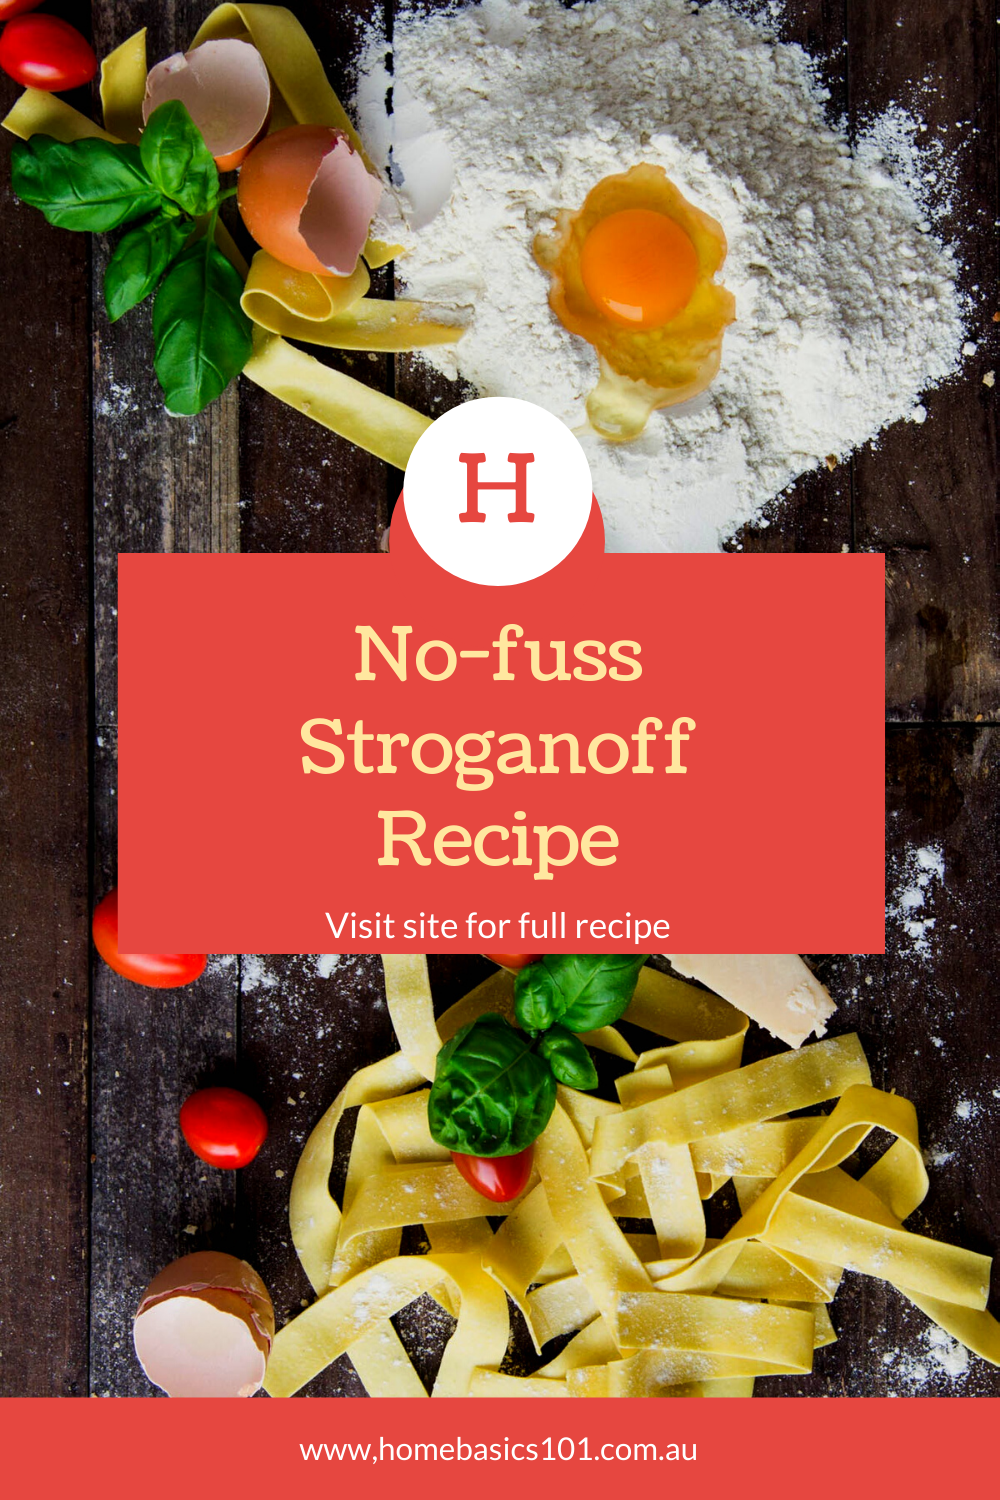 One of the most easy and simple recipes